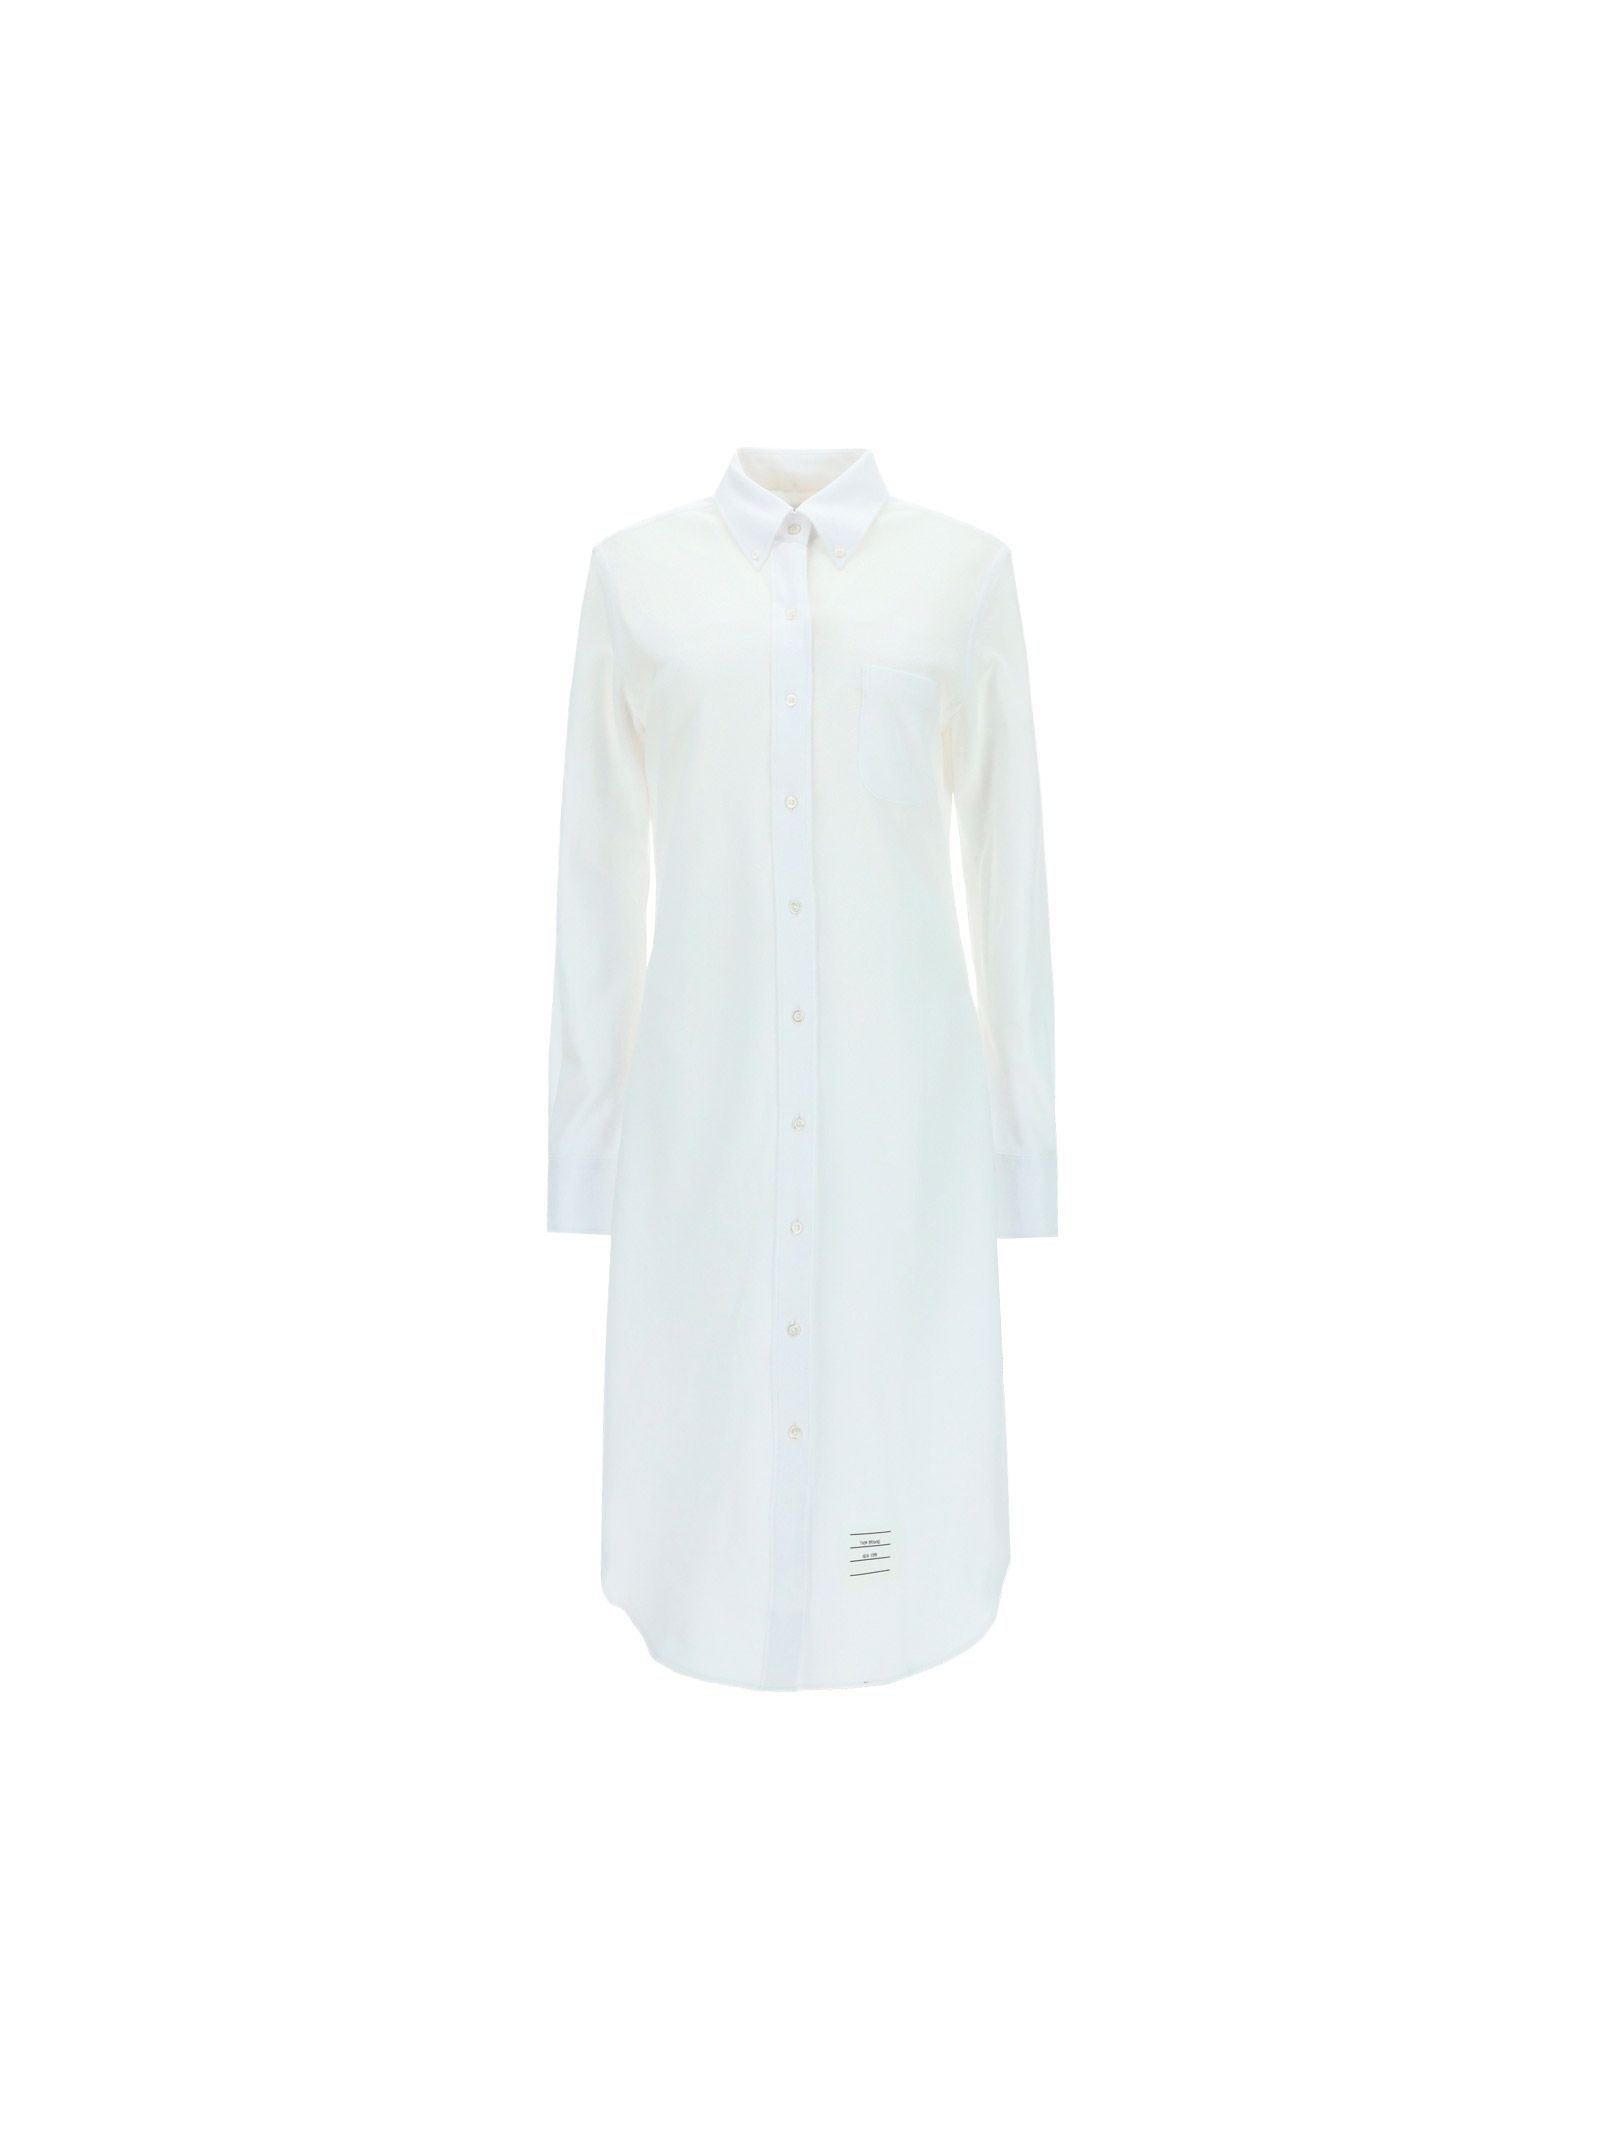 Thom Browne THOM BROWNE WOMEN'S FDS001A00050100 WHITE OTHER MATERIALS DRESS